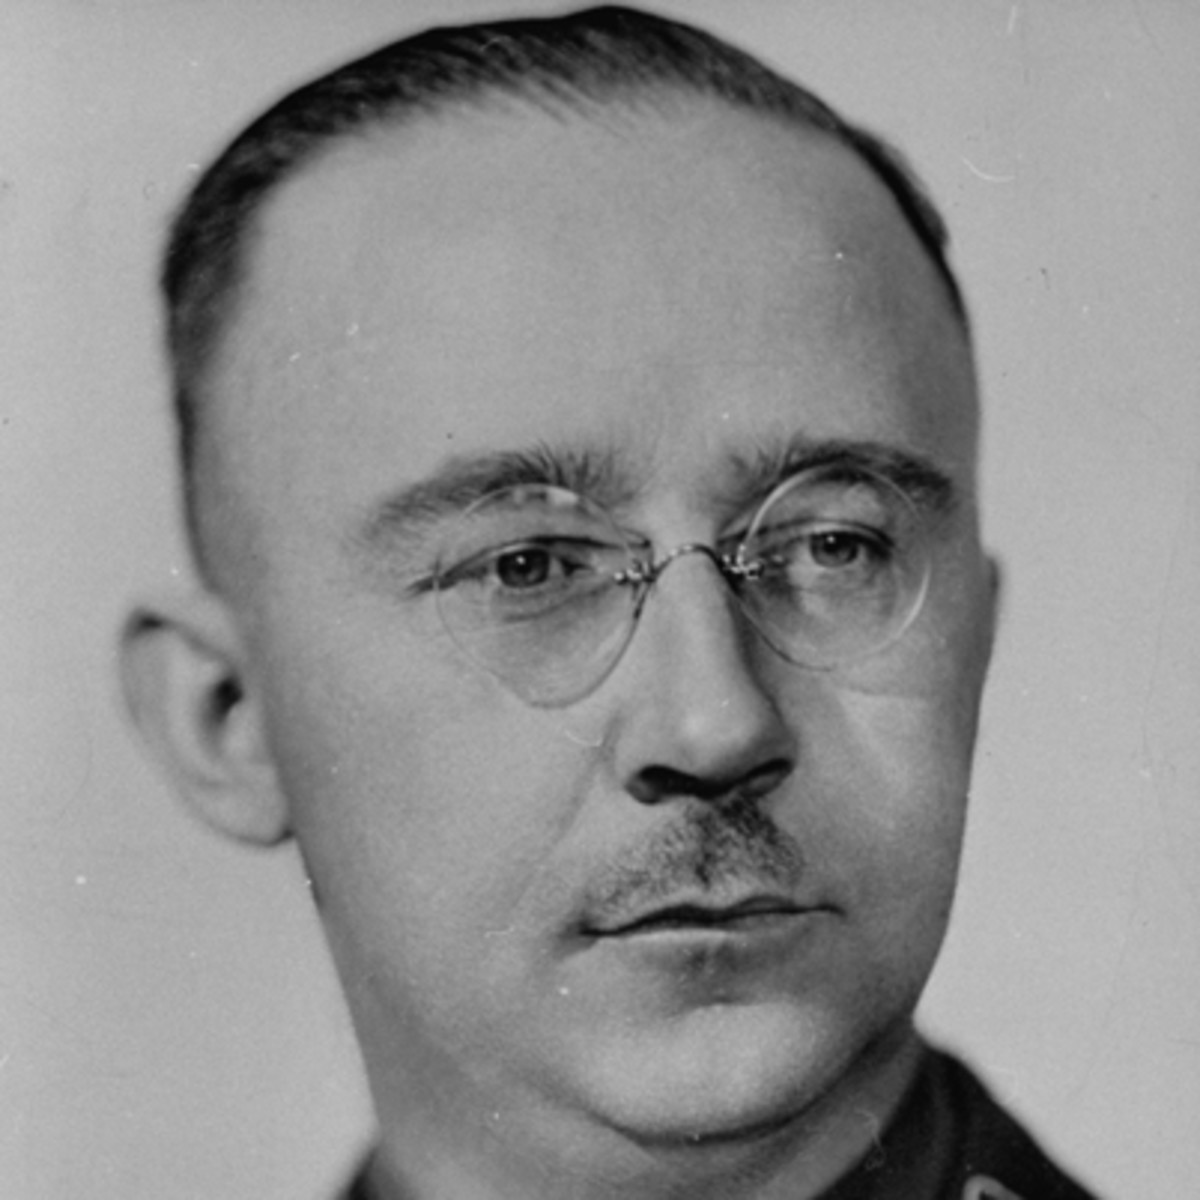 """an analysis of heinrich himmlers involvement in world war ii In october 1939, soon after the outbreak of world war ii, himmler was appointed reich commissar for the """"strengthening of german nationhood,"""" and was given control of newly occupied poland."""